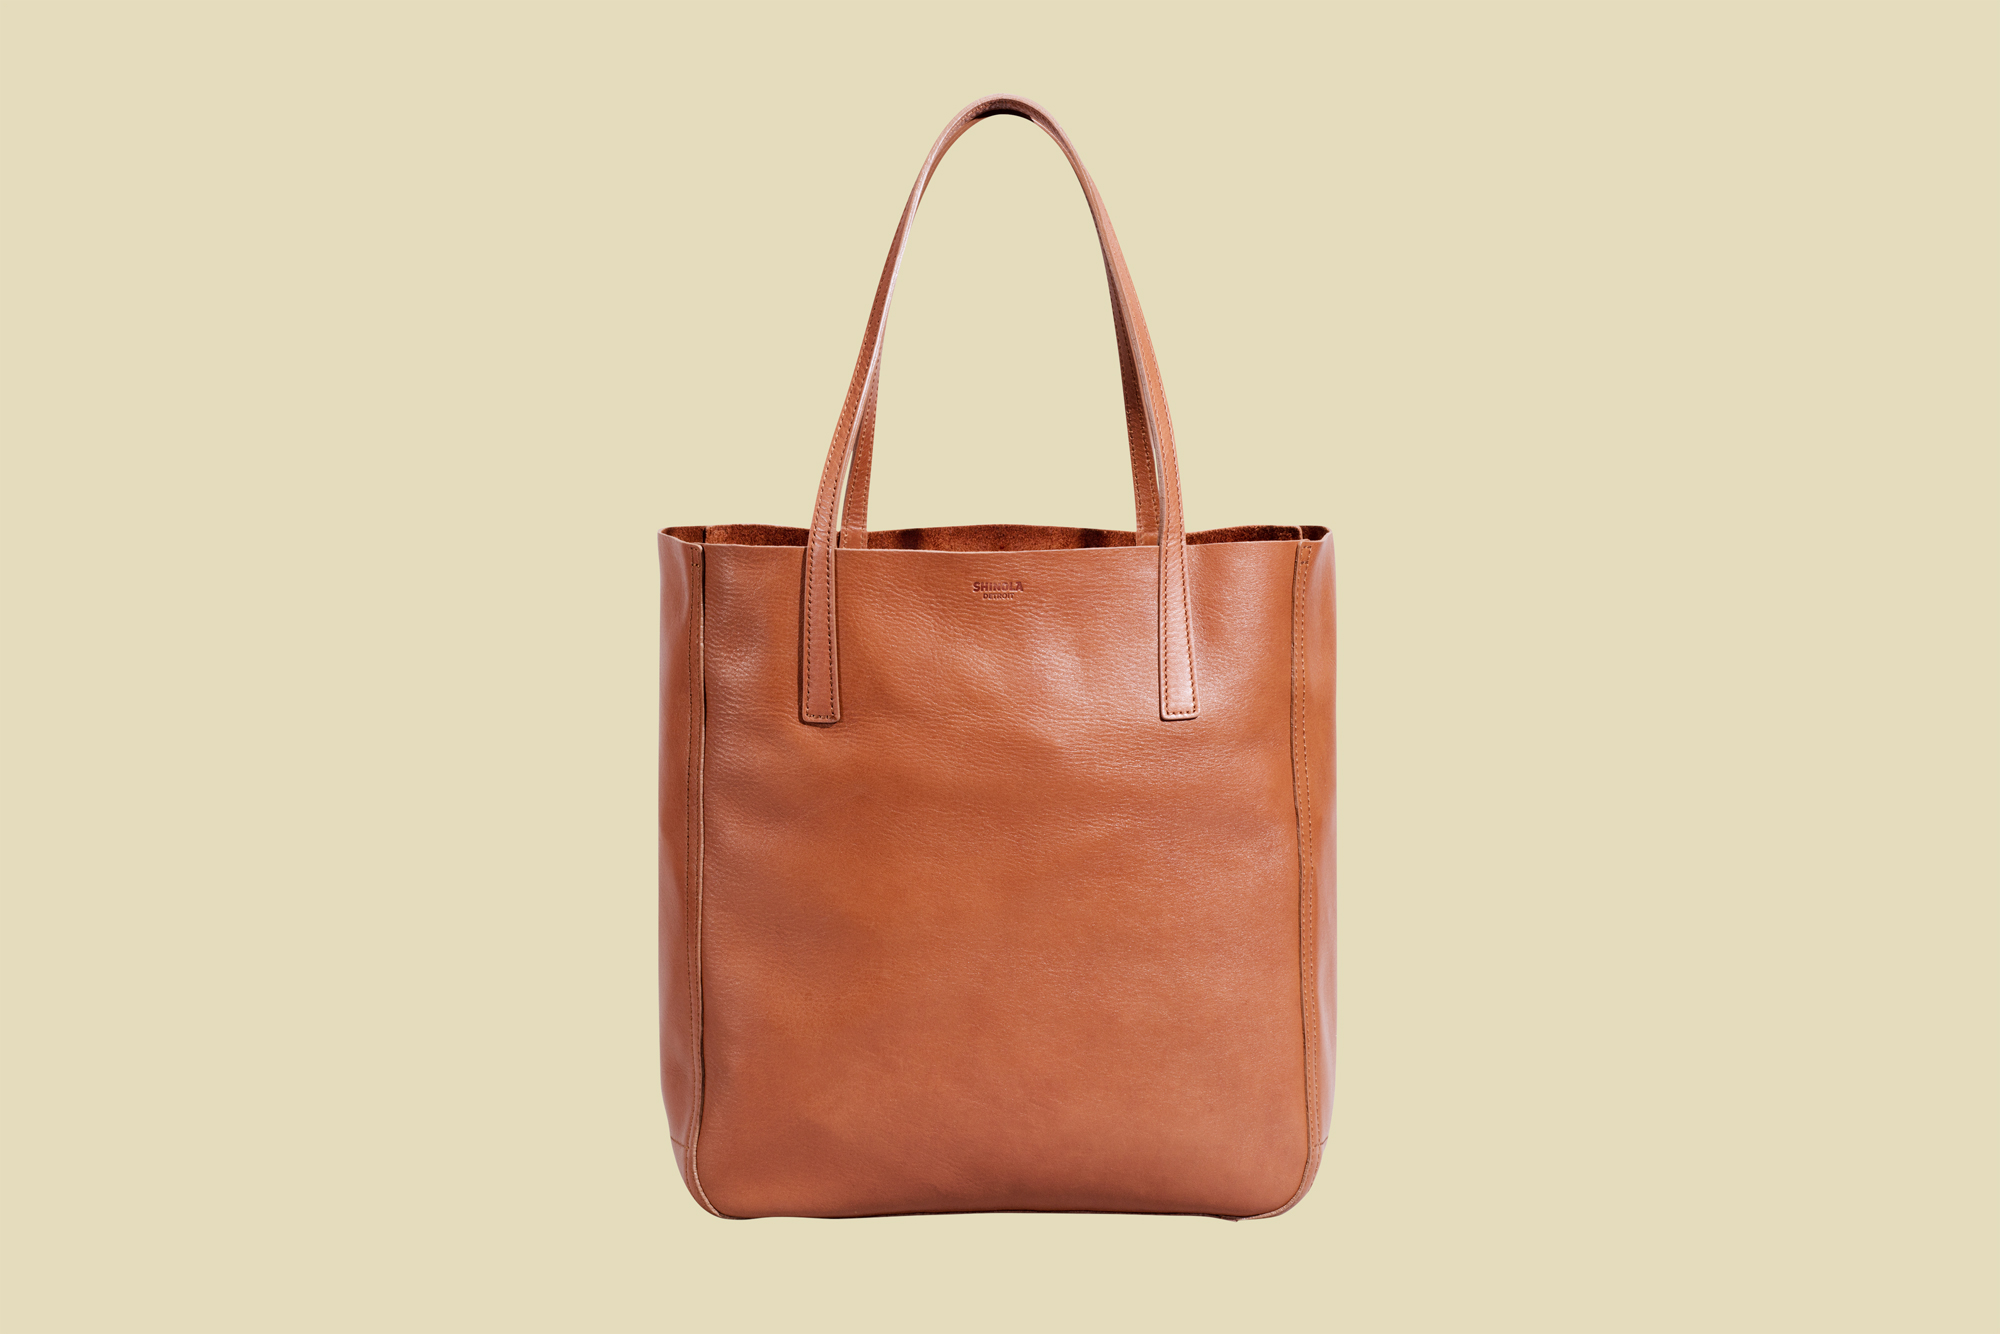 brown leather Shinola Medium Shopper Tote